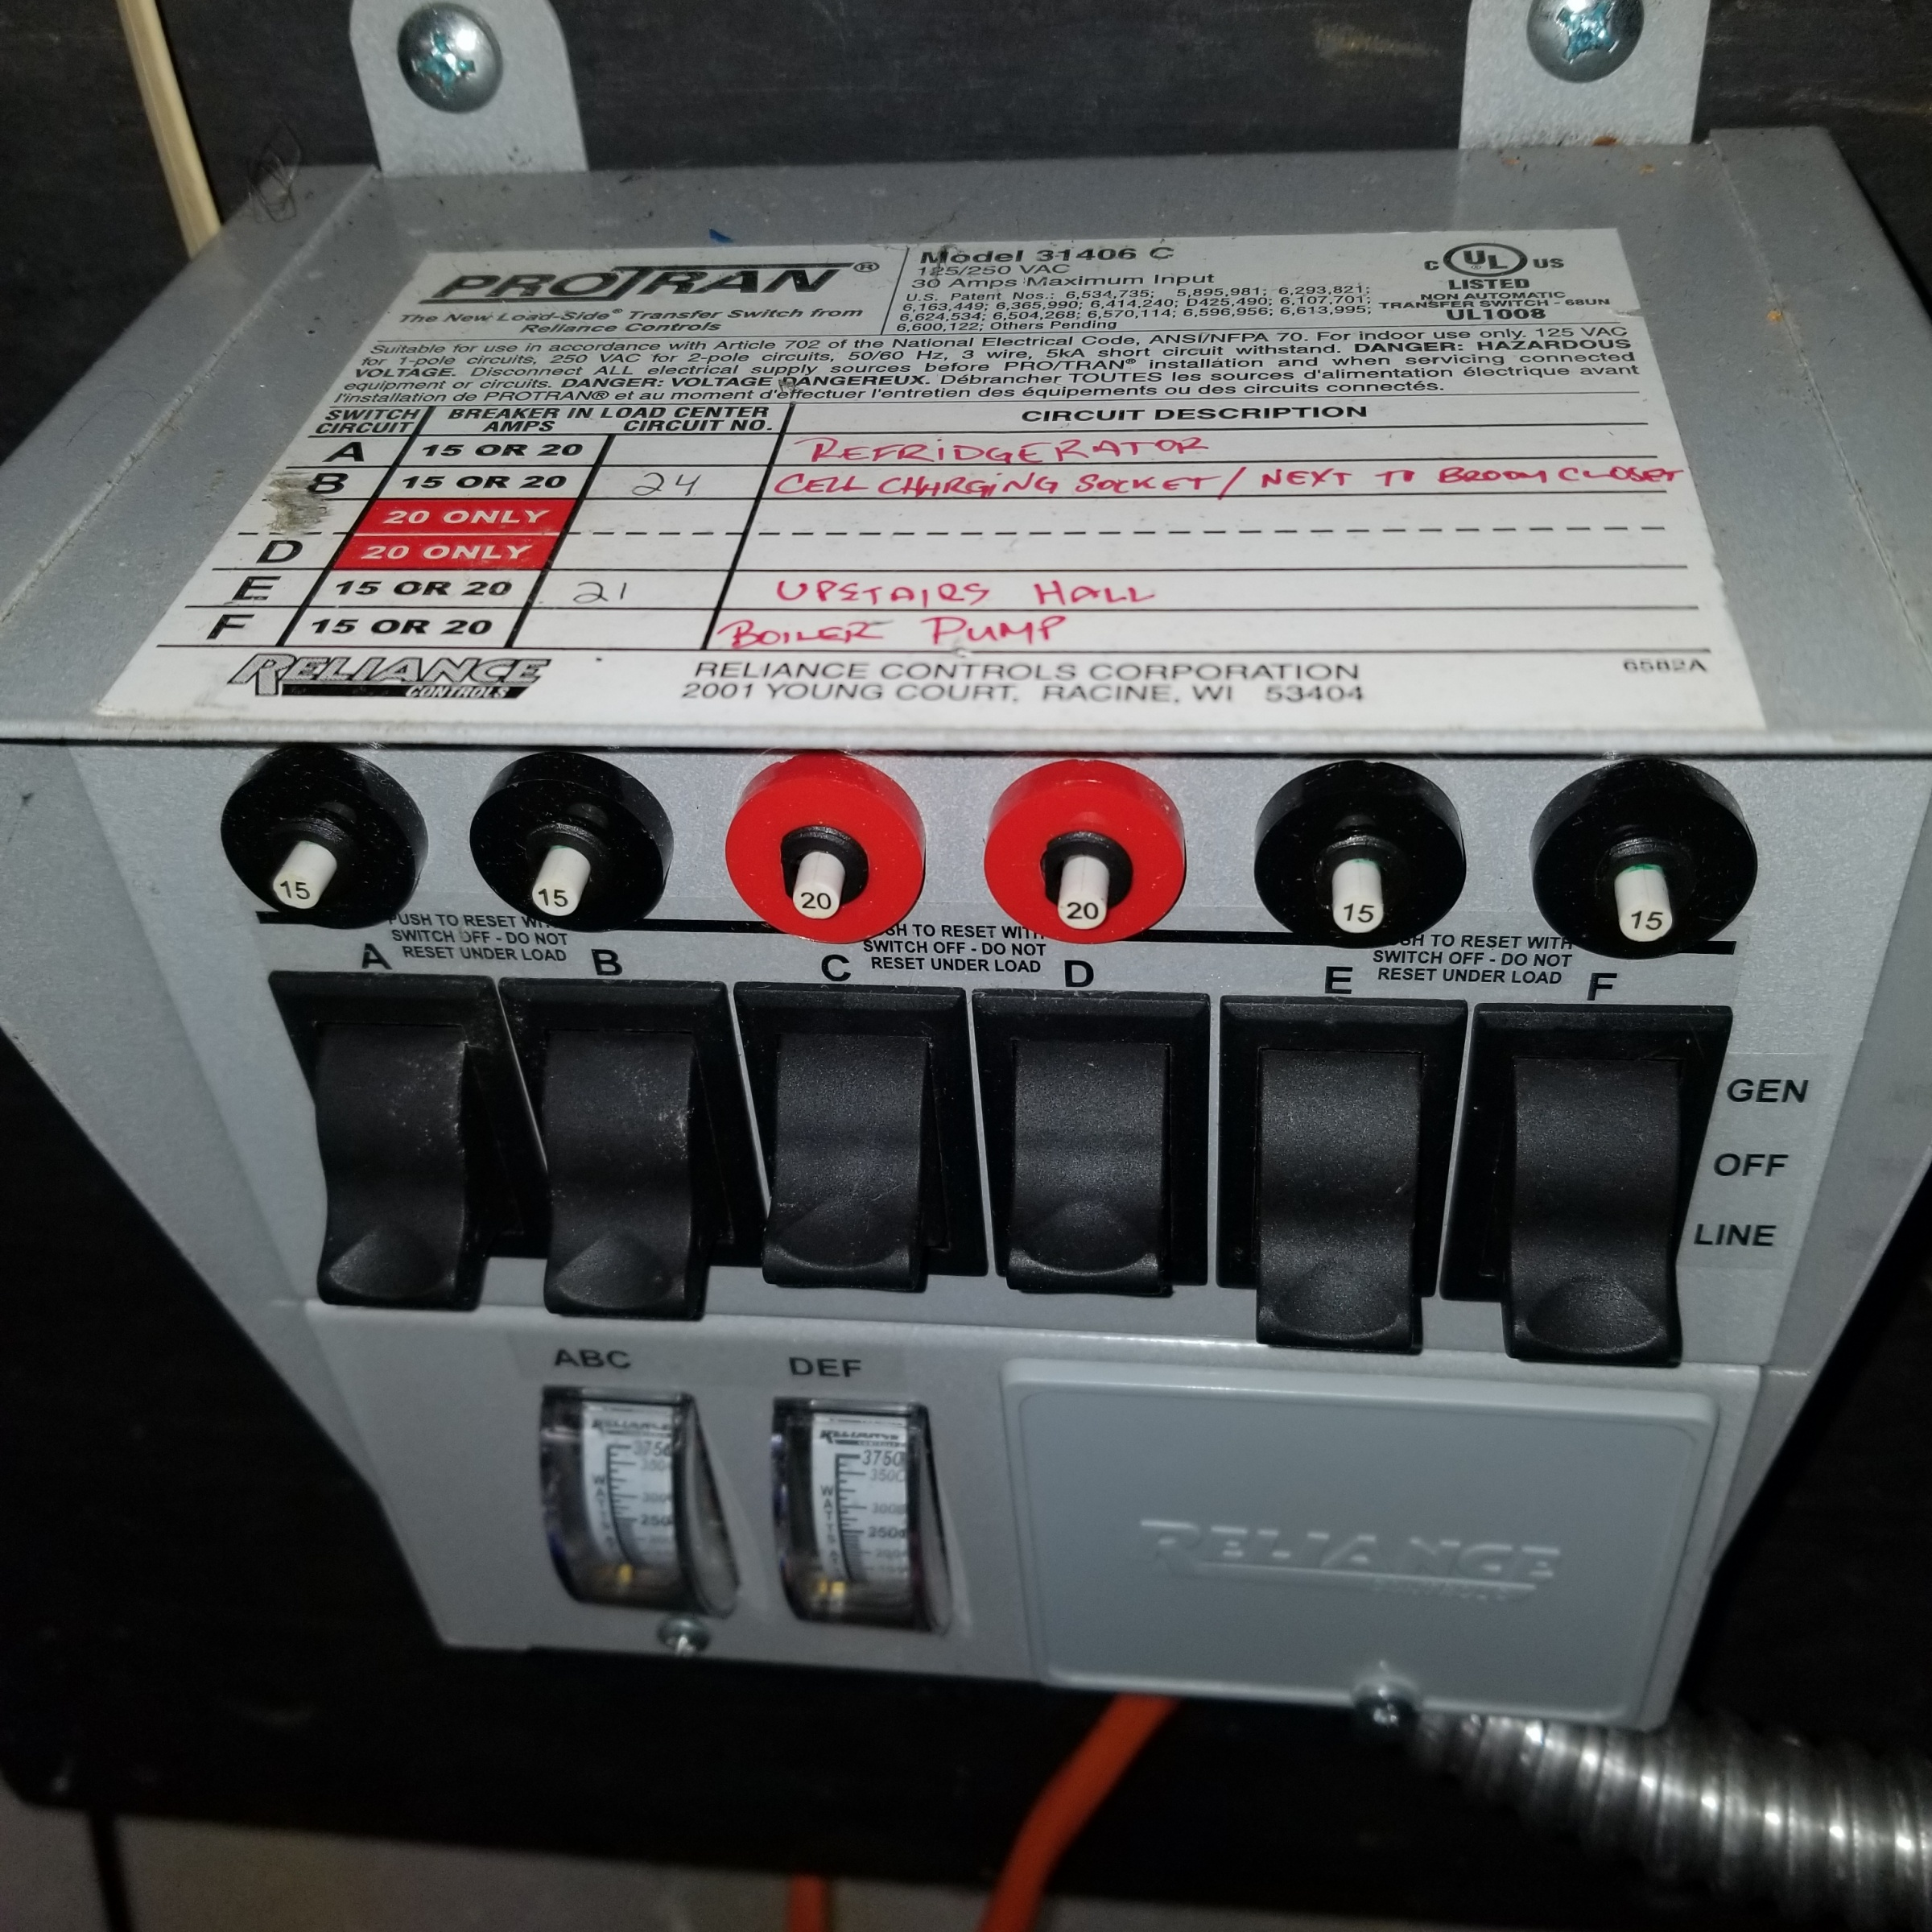 Generator Transfer Switch - Need some advice for setup-20181013_202817.jpg